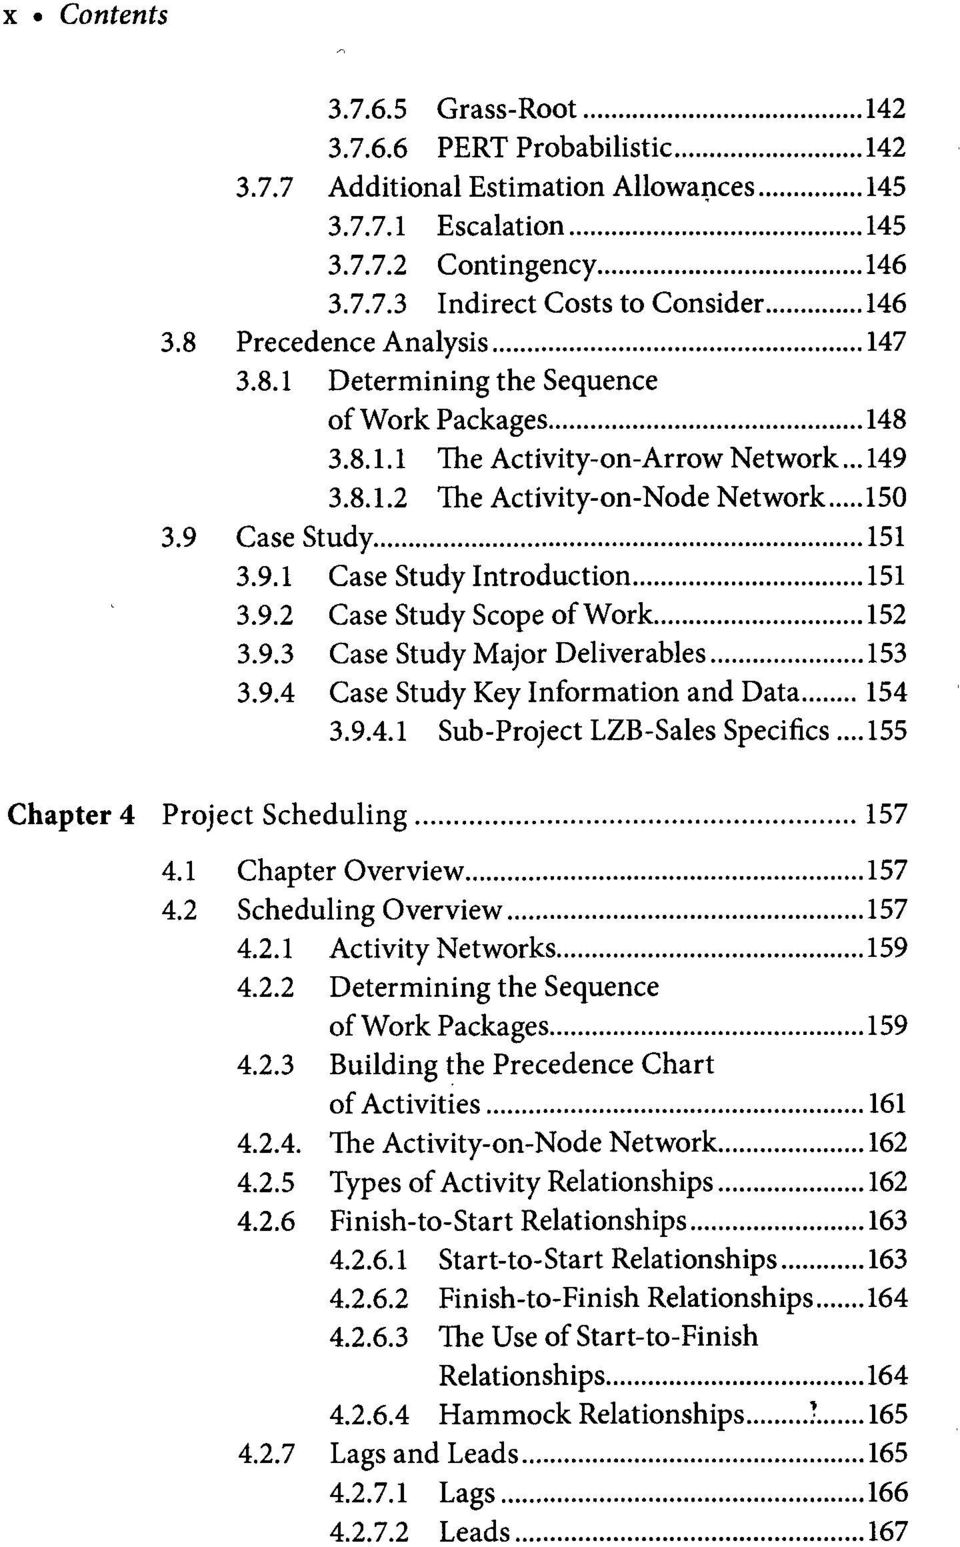 9.2 Case Study Scope of Work 152 3.9.3 Case Study Major Deliverables 153 3.9.4 Case Study Key Information and Data 154 3.9.4.1 Sub-Project LZB-Sales Specifics...155 Chapter 4 Project Scheduling 157 4.